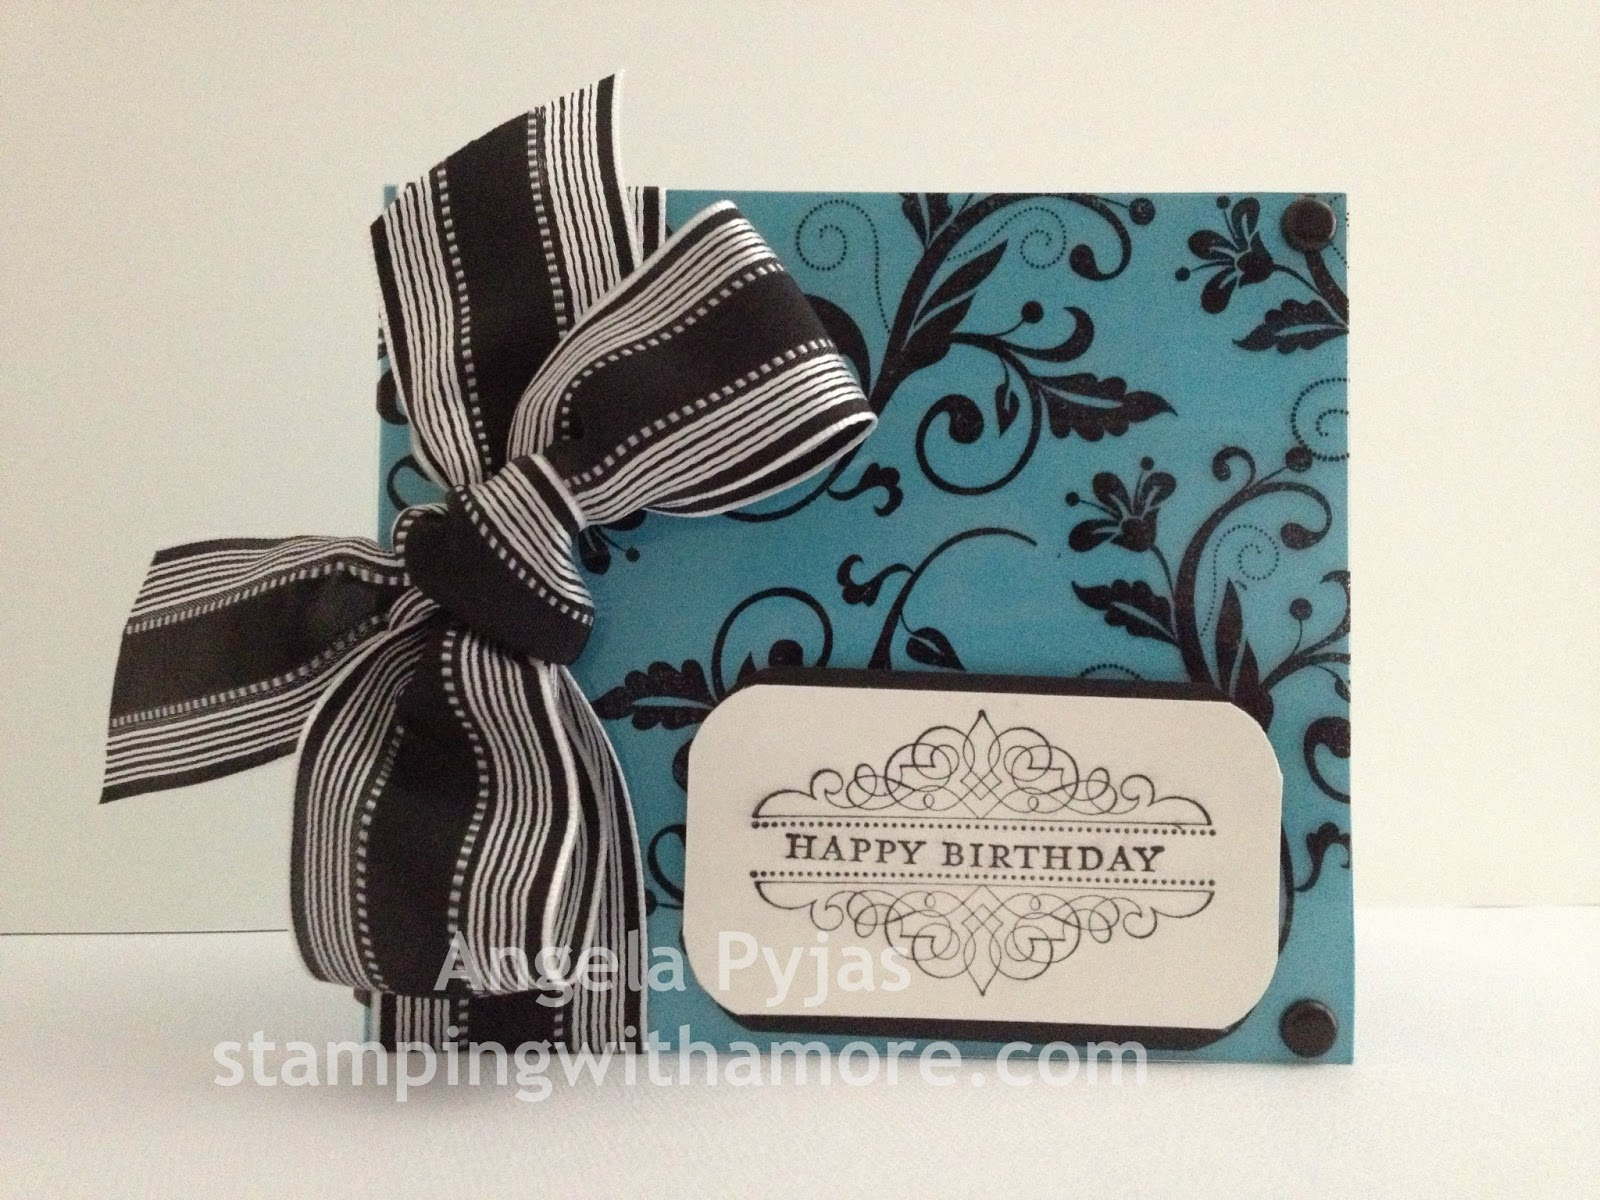 stampingwithamore flowering flourishes stampin'up birthday card, Birthday card